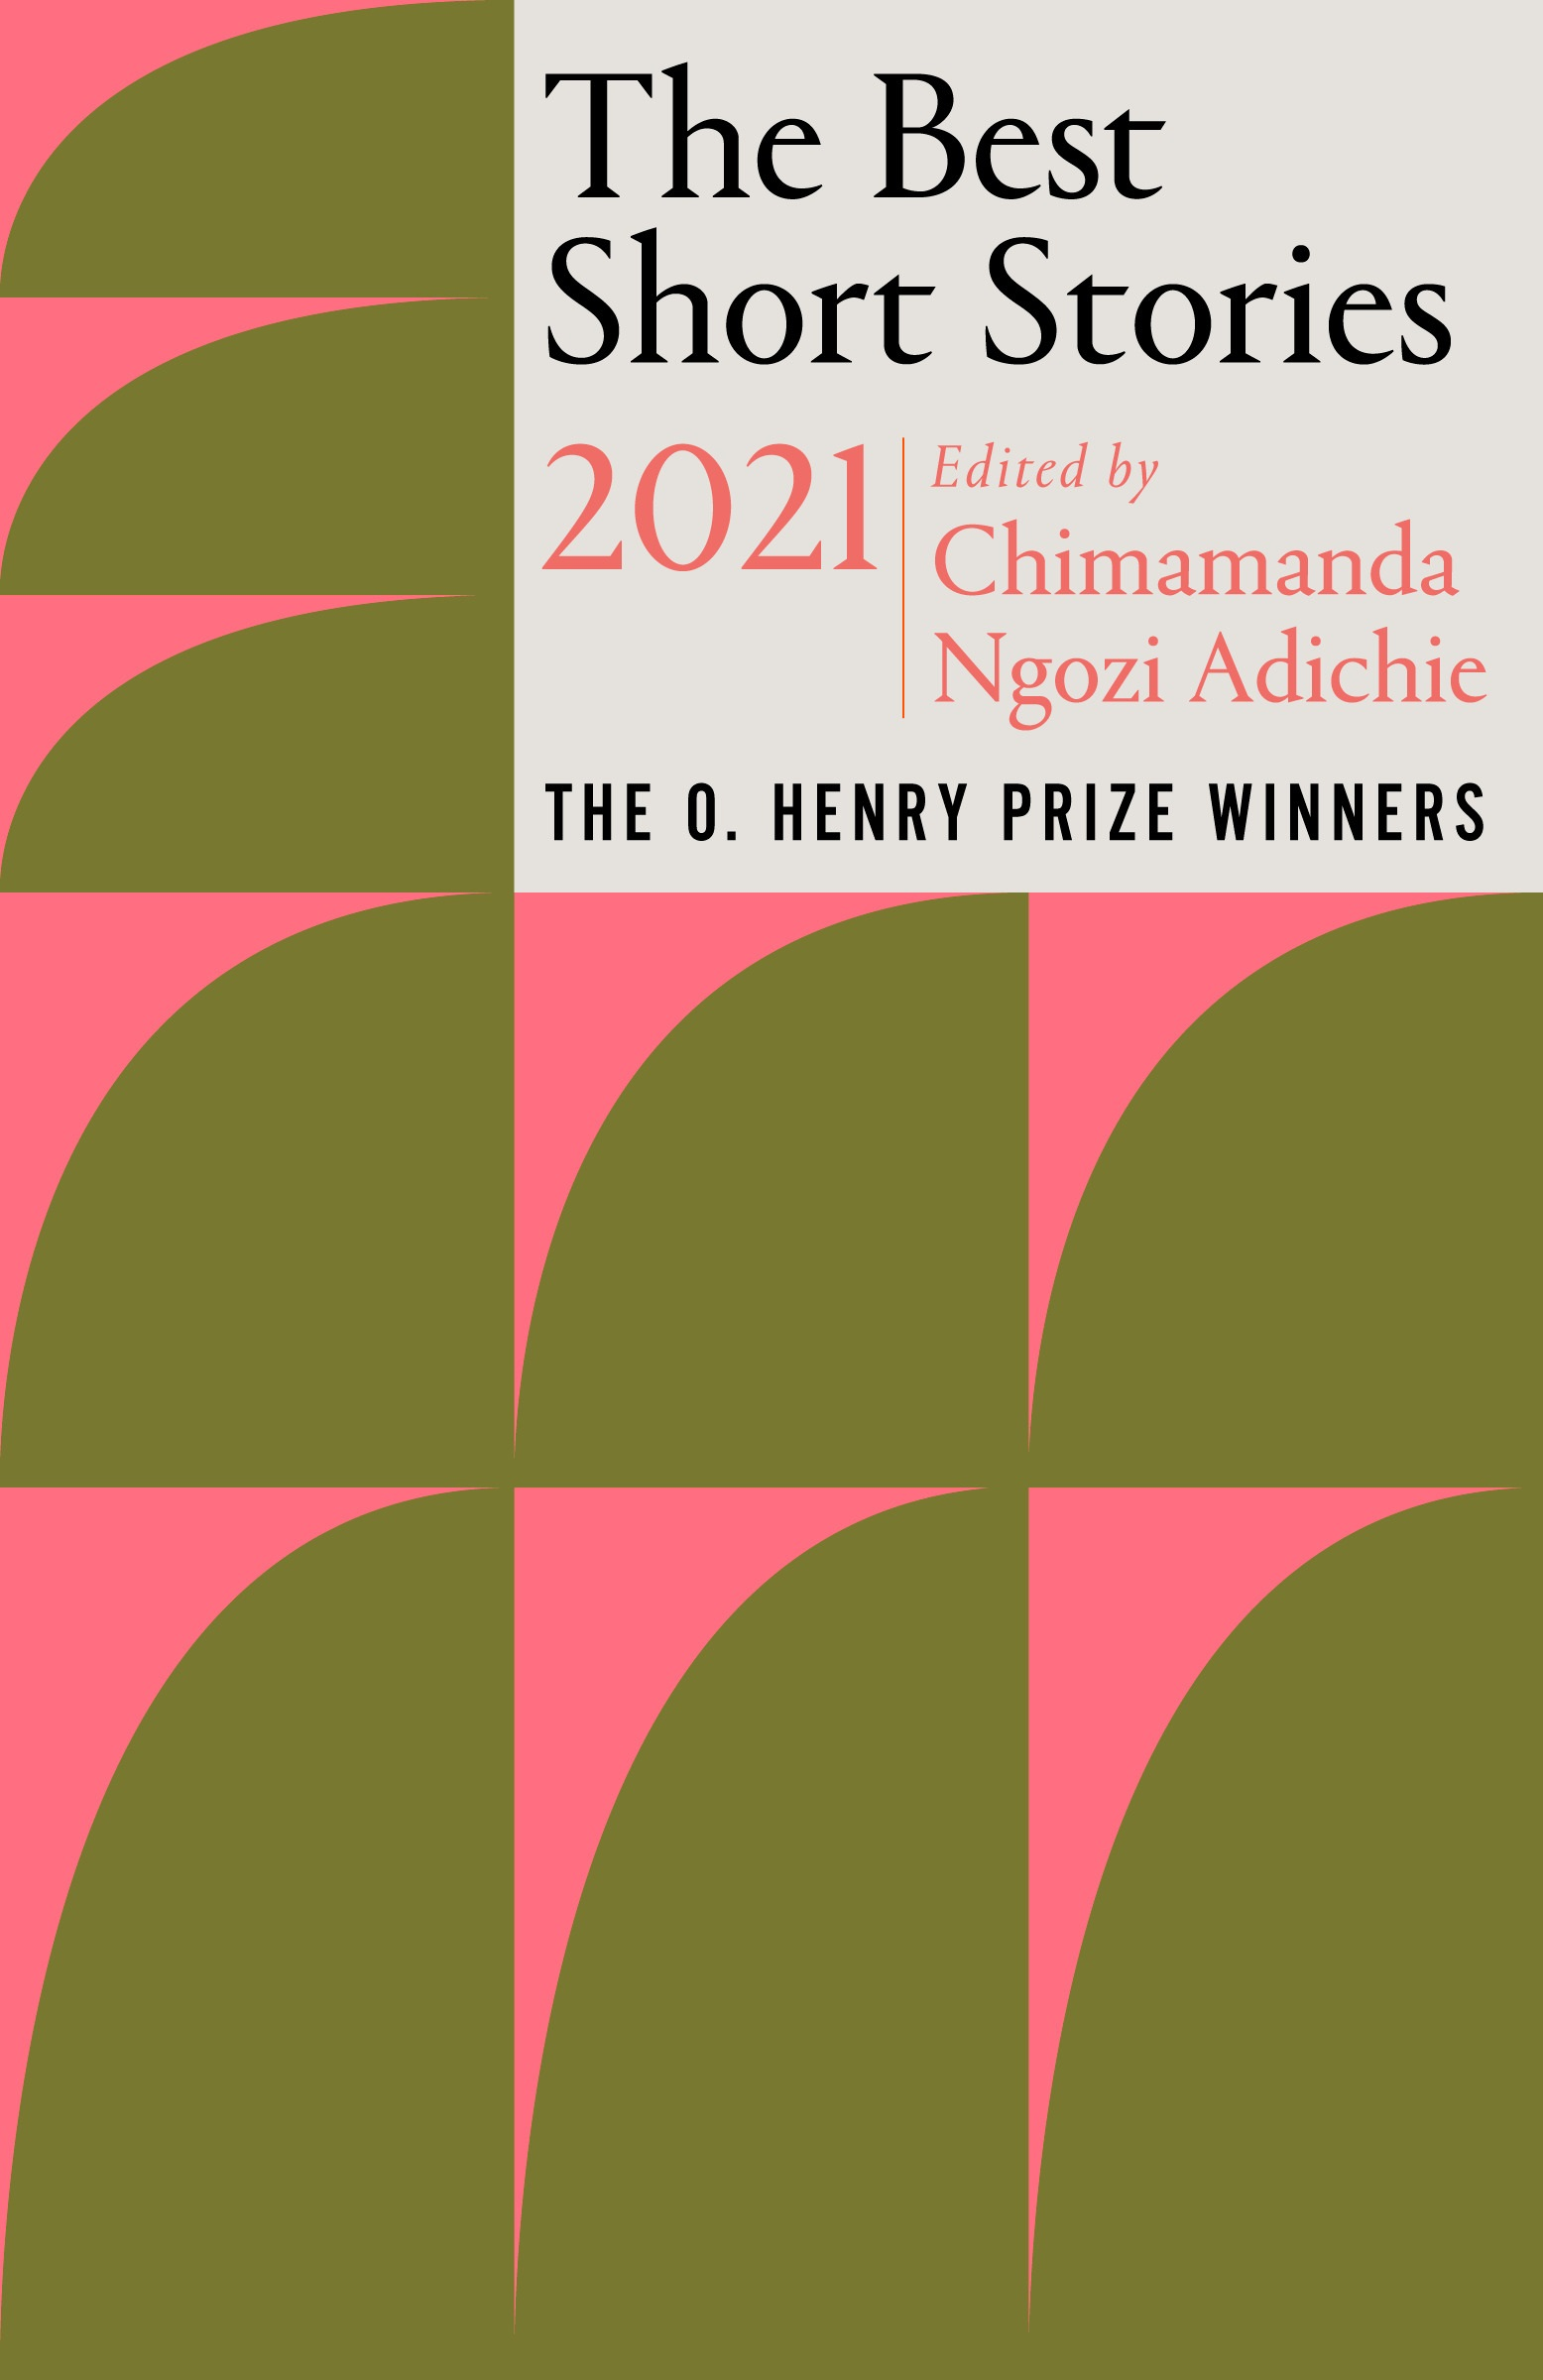 Virtual Book Launch: The Best Short Stories 2021 with guest editor Chimamanda Ngozi Adichie and editor Jenny Minton Quigley